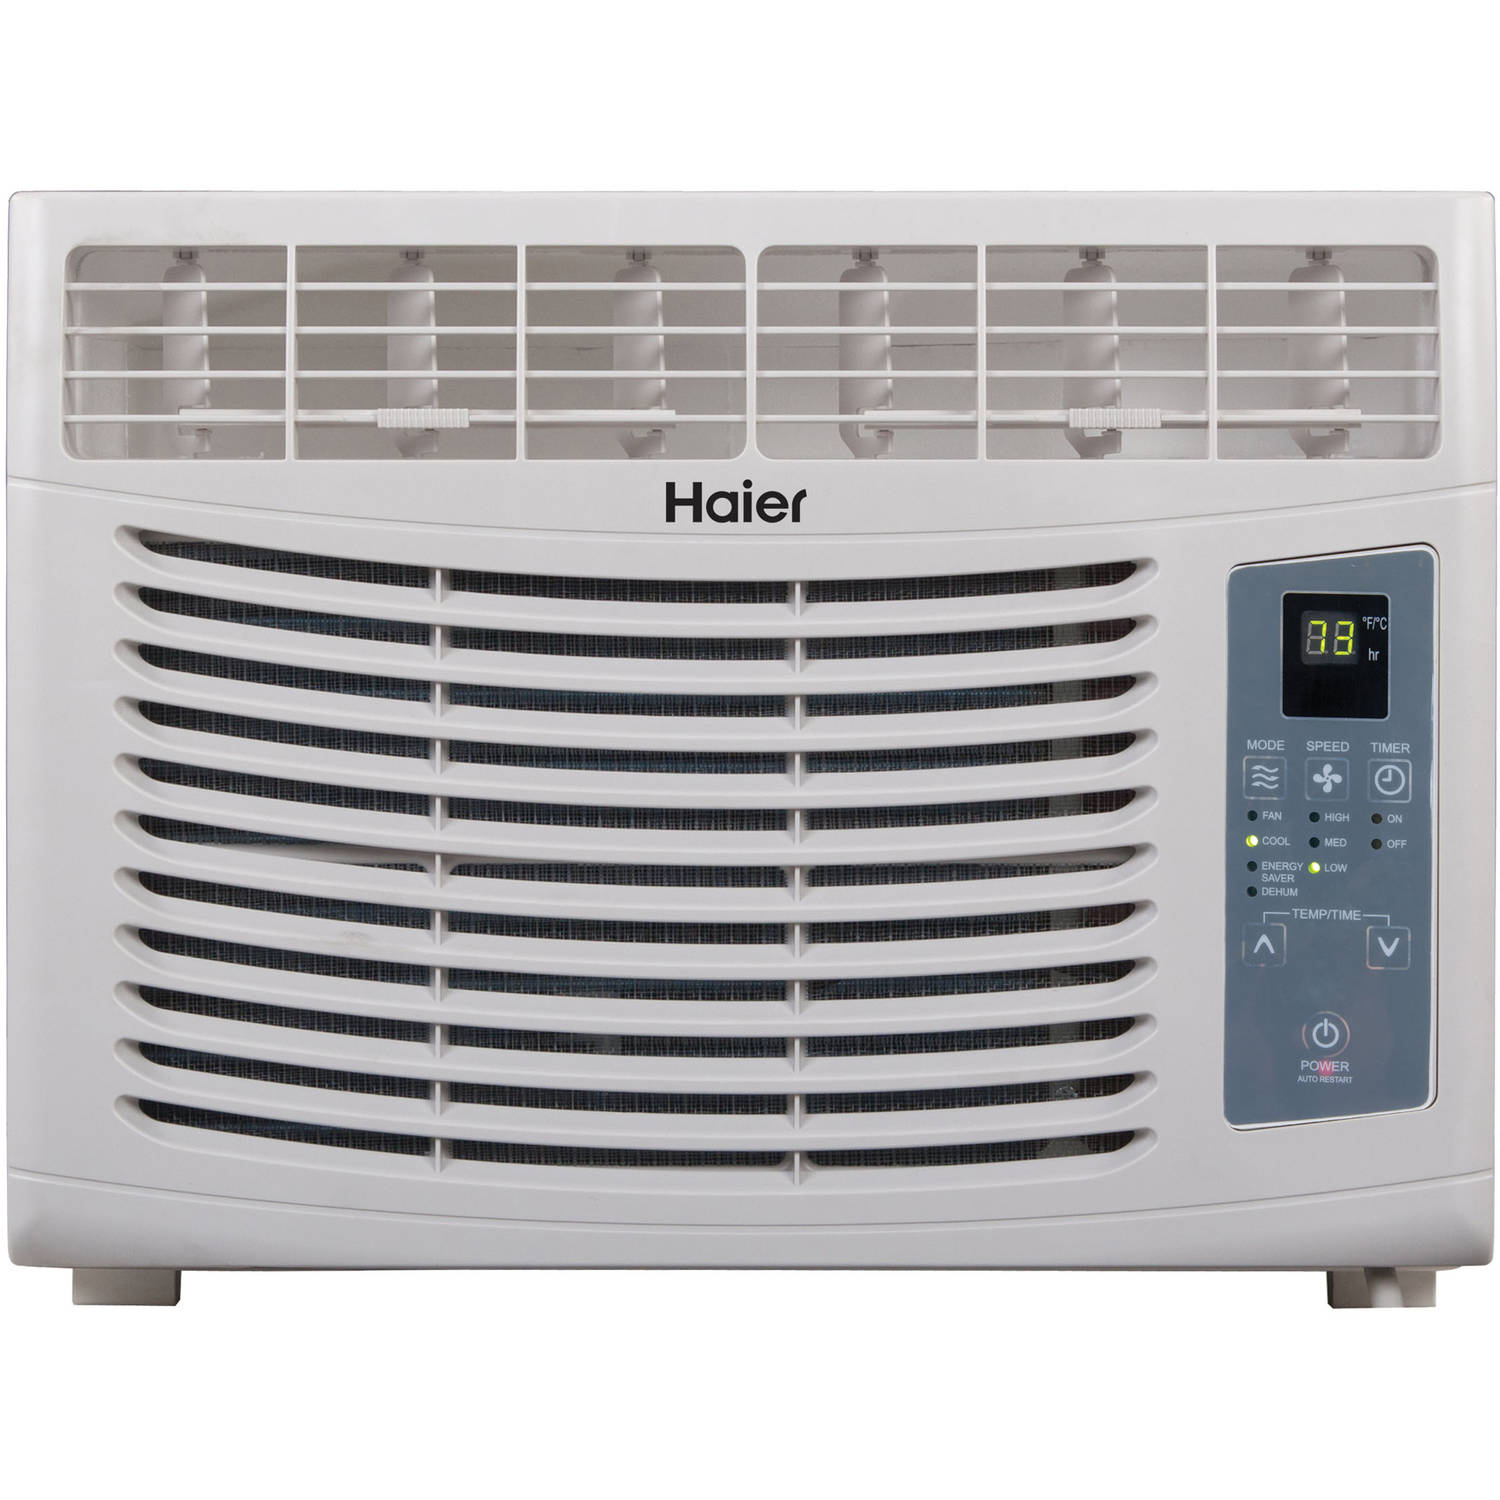 haier hwr05xcr l 5000 btu window air conditioner with remote 115v walmartcom - Air Conditioning Units